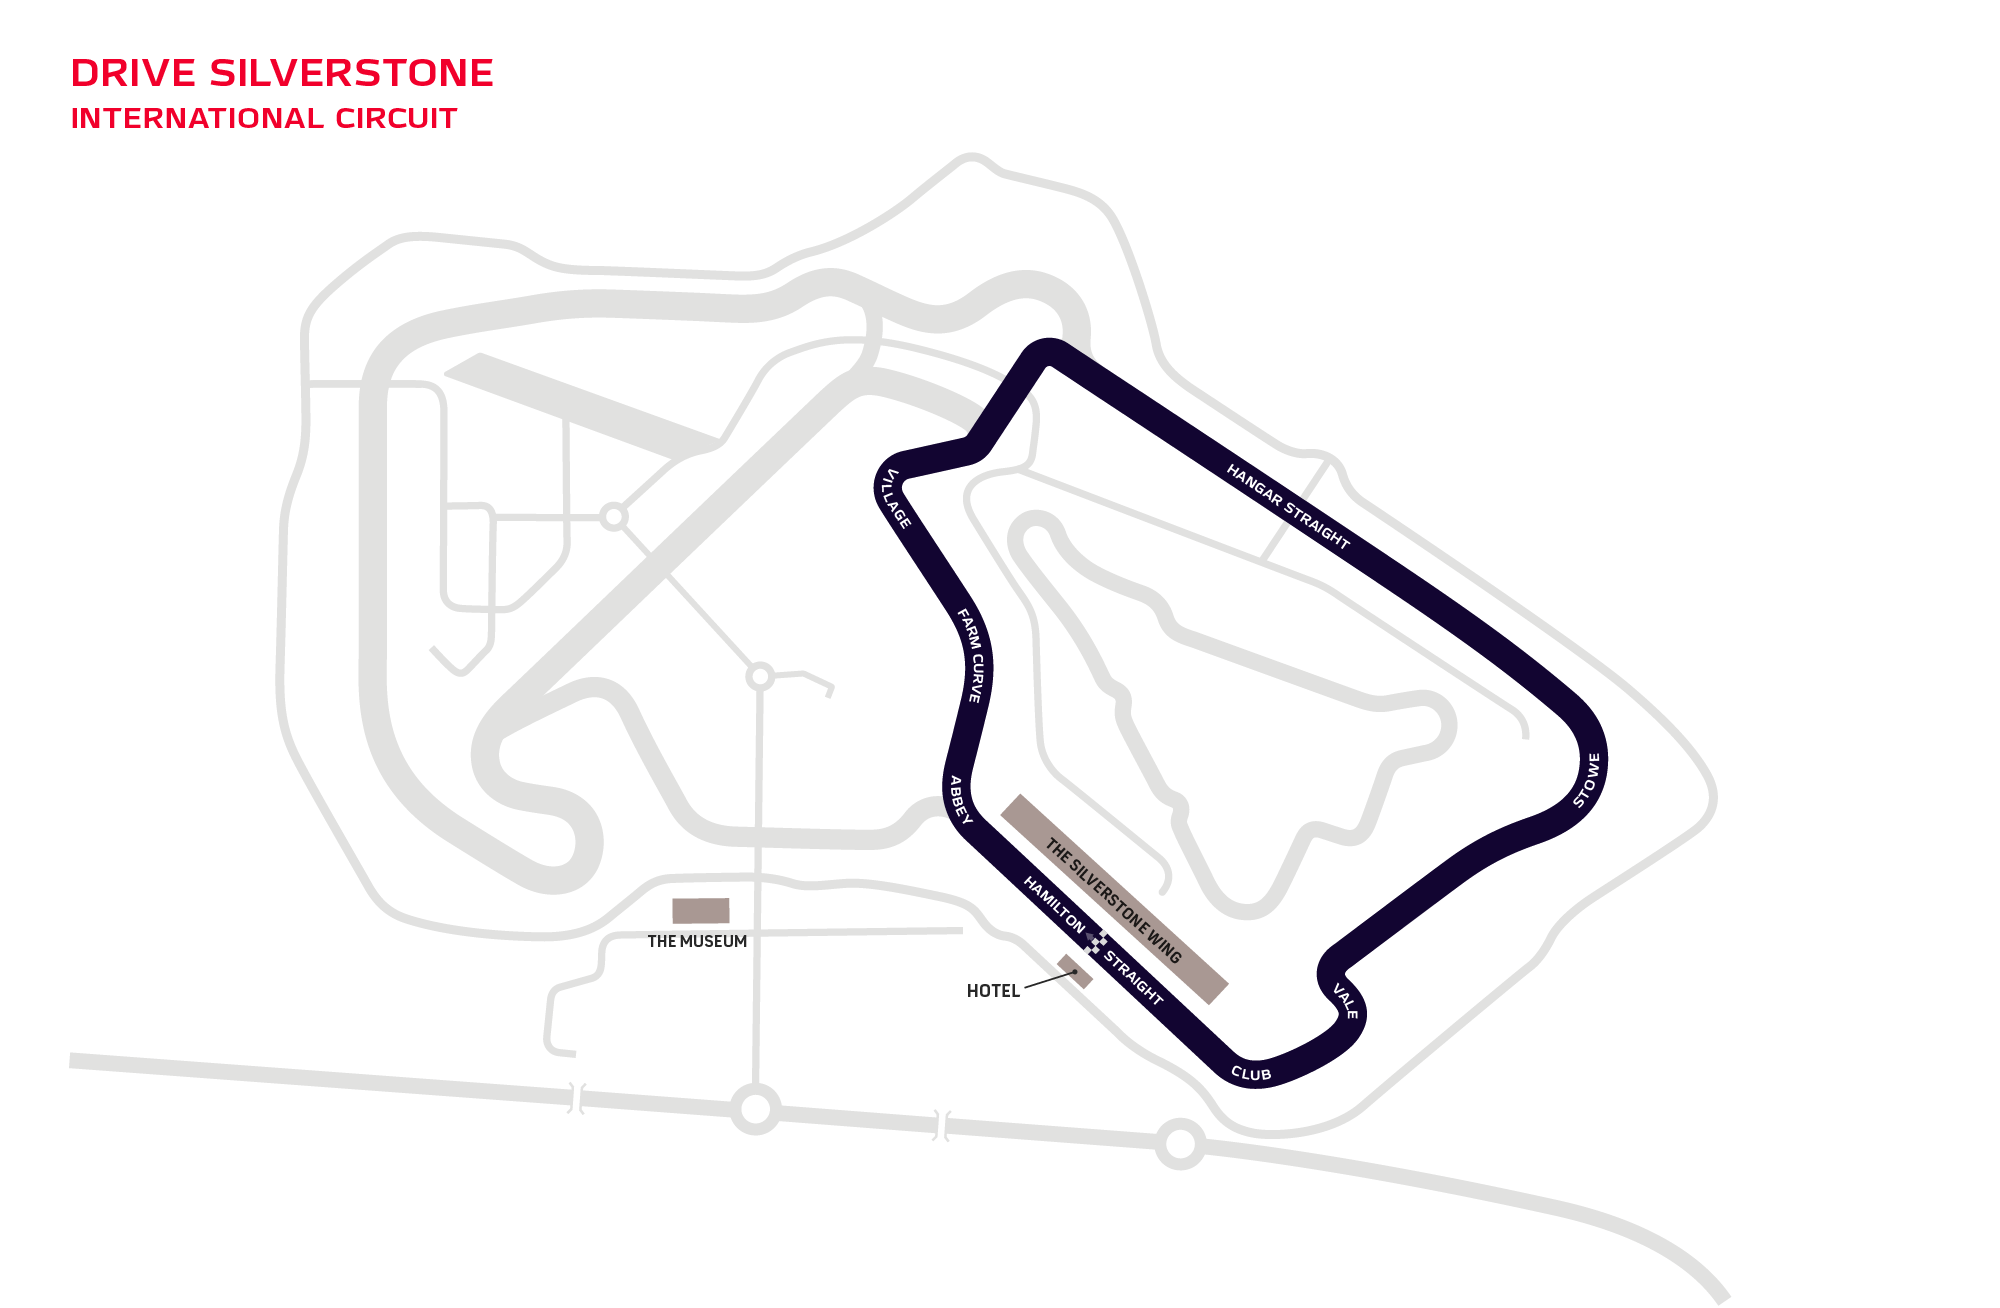 Drive Silverstone International circuit map